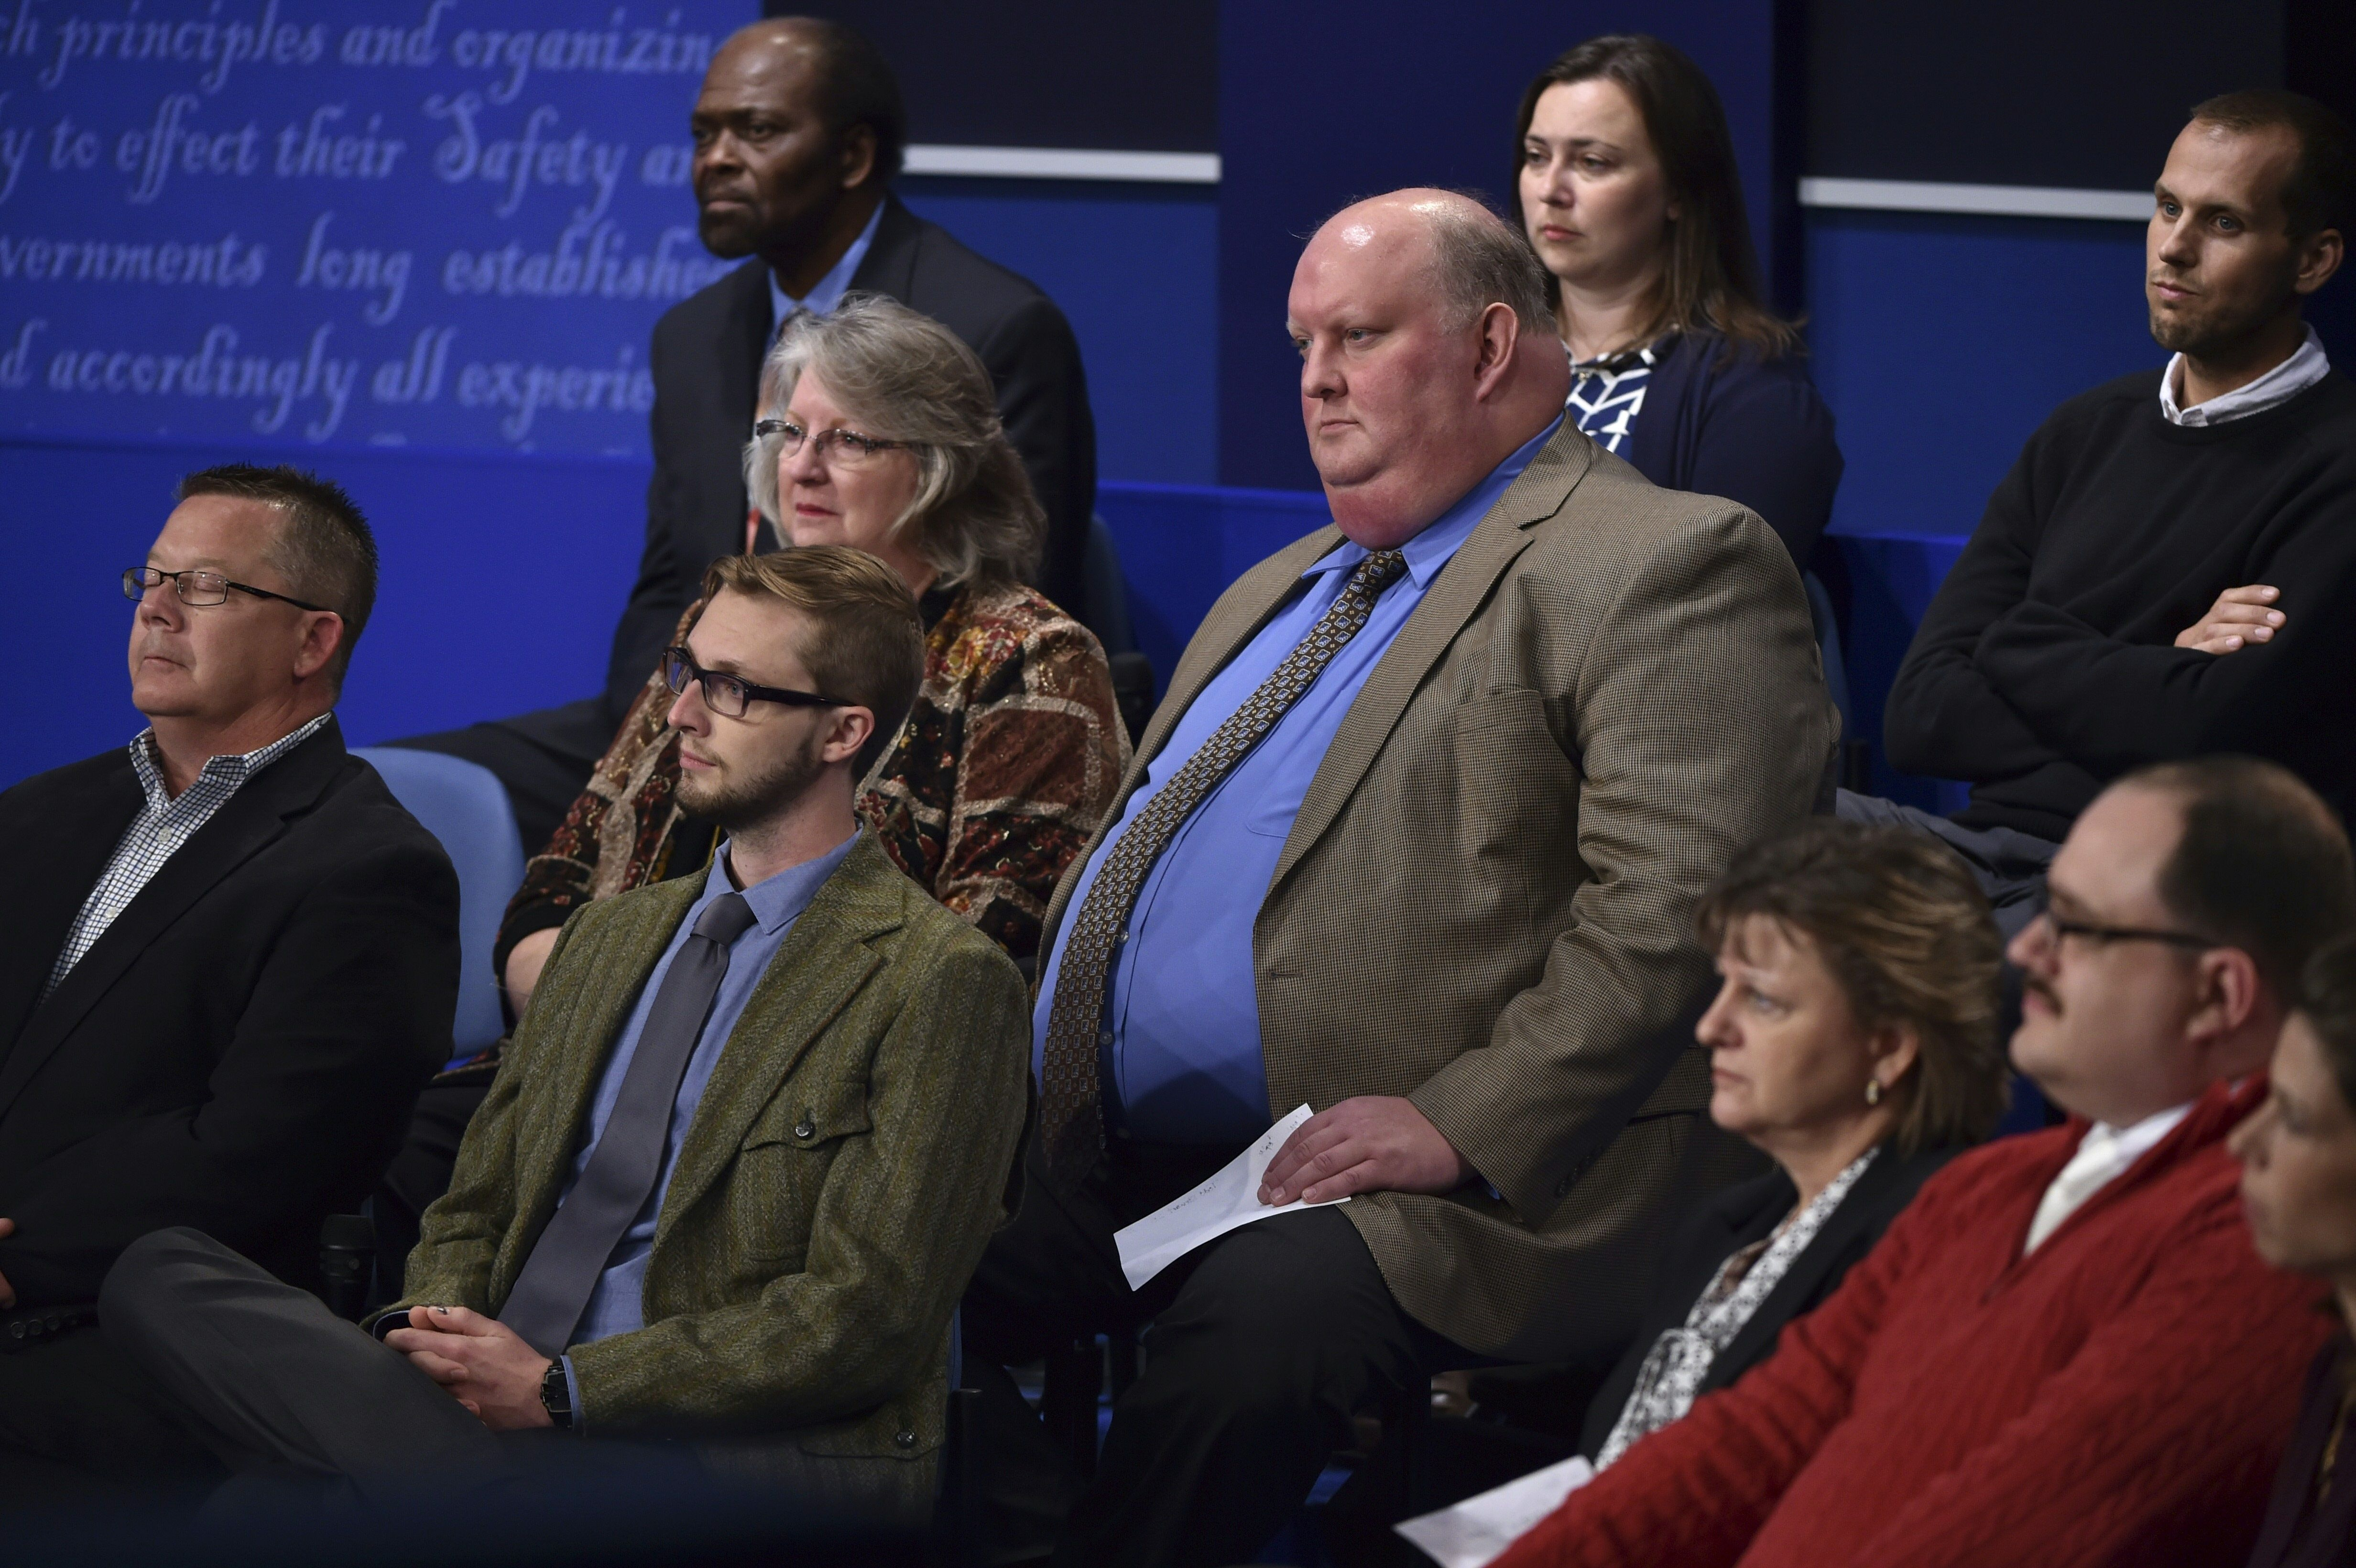 13 Photos & Videos Of Ken Bone At The Second Debate Show Why He's ...